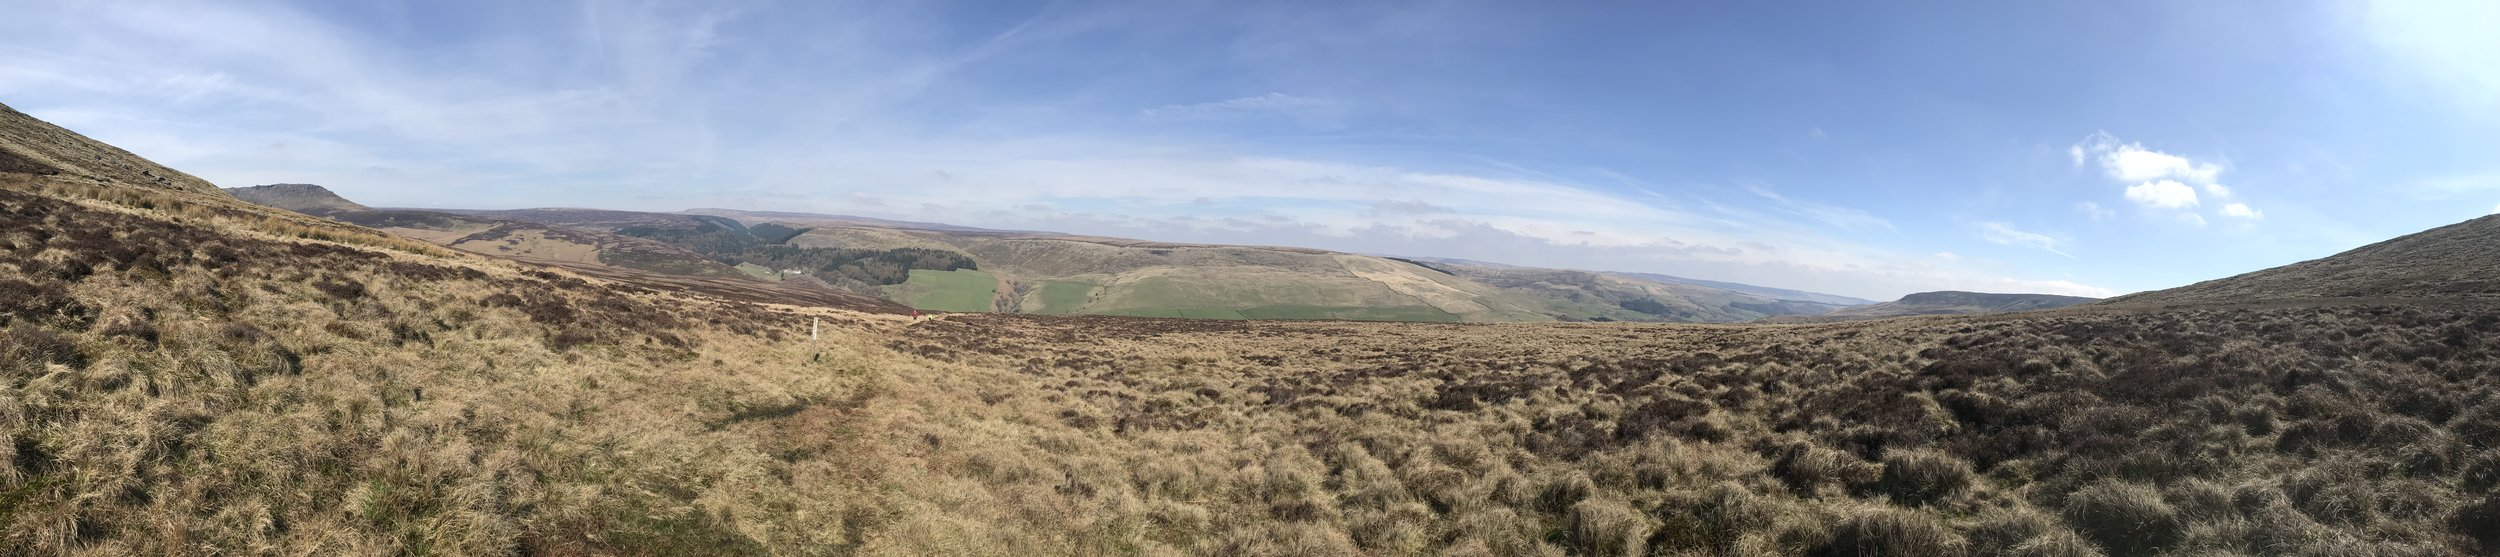 Looking down into Derwent Valley from below the summit of Seal Stones.